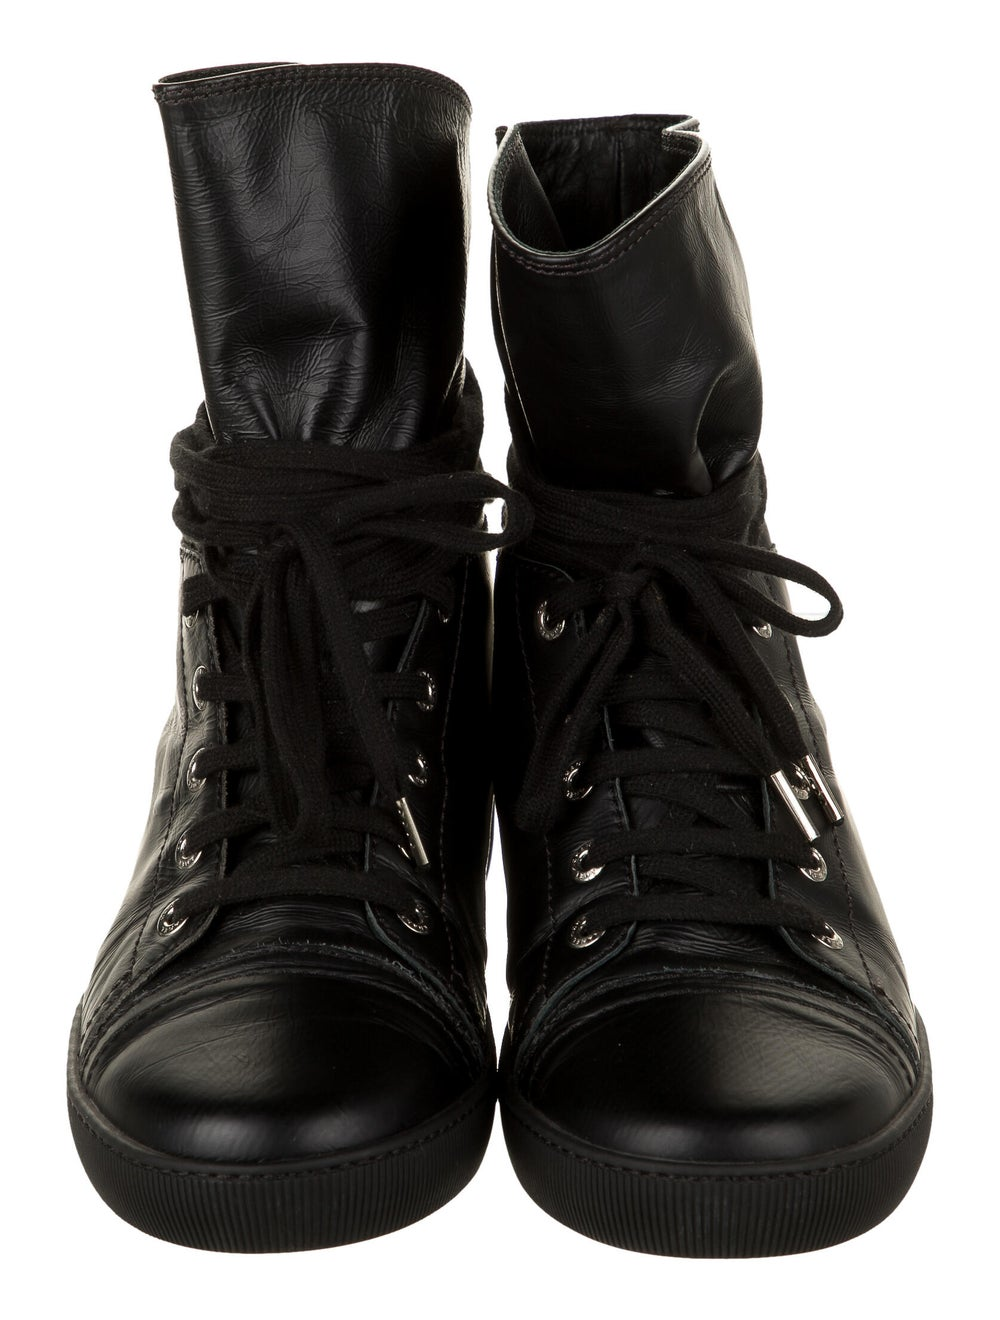 Chanel Leather Sneakers Wedge Sneakers Black - image 3